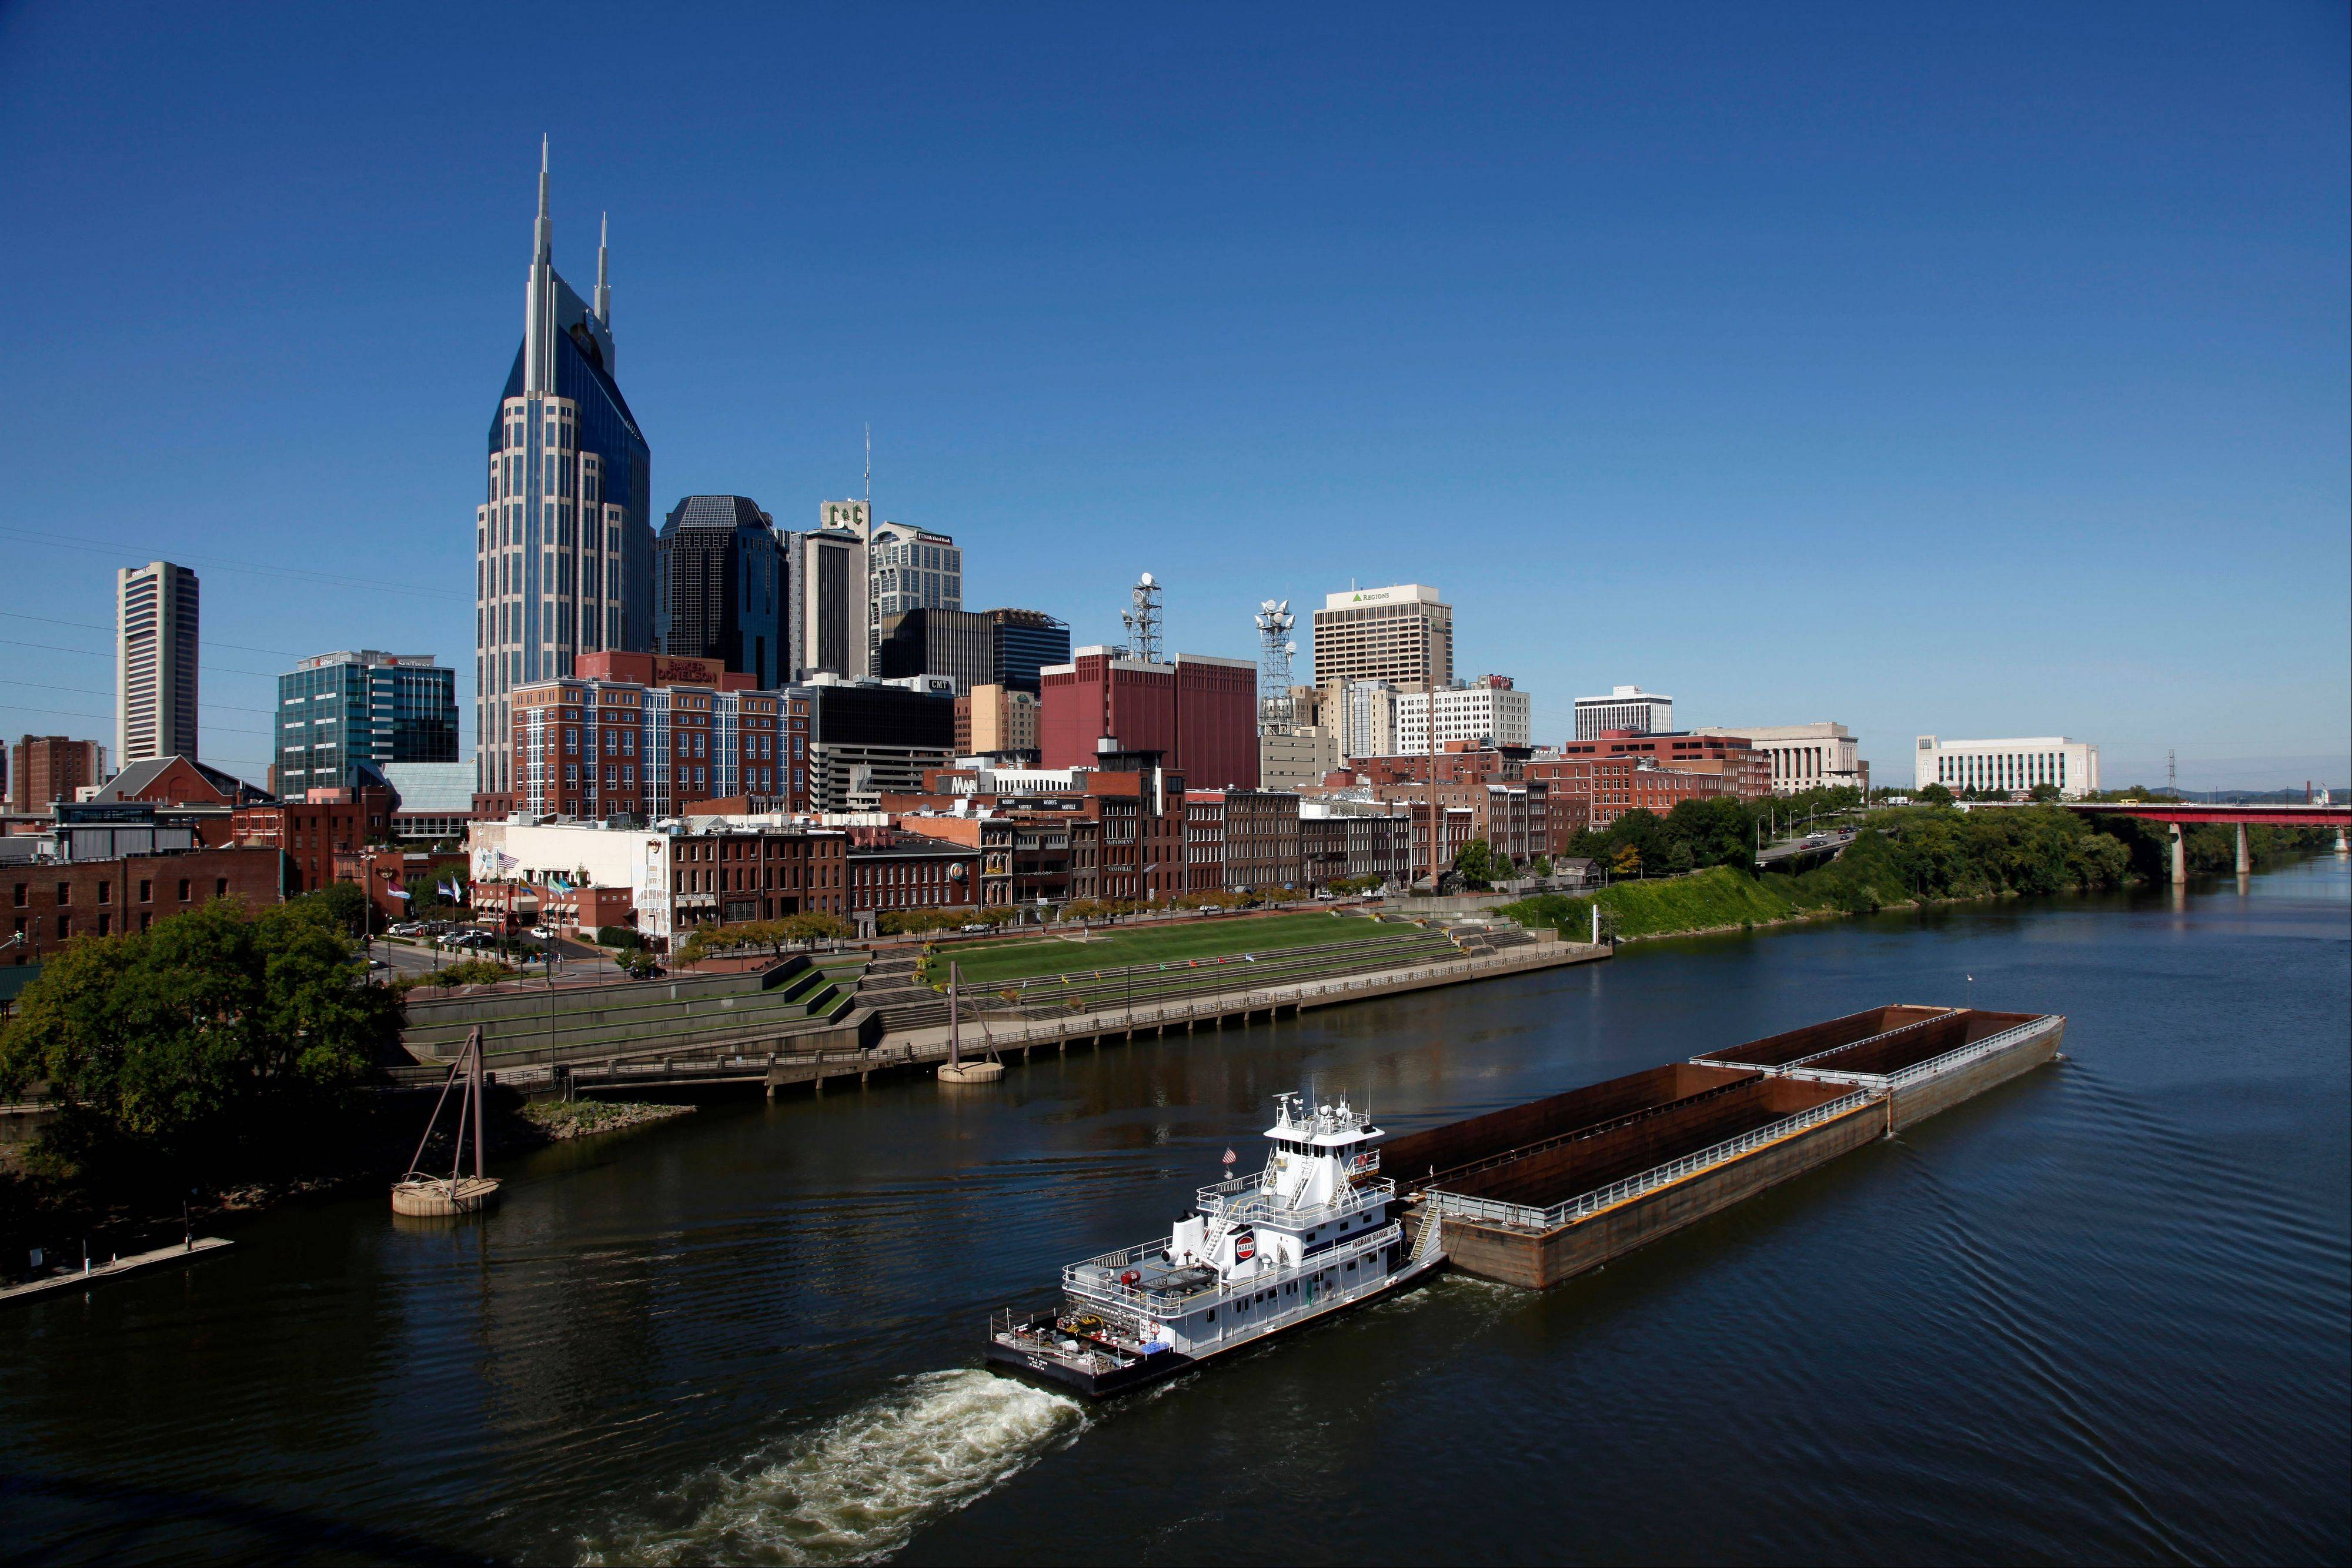 The banks of the Cumberland River and the bridges over it offer viewpoints for the Nashville, Tenn., skyline that inspired Bob Dylan to write a country album.